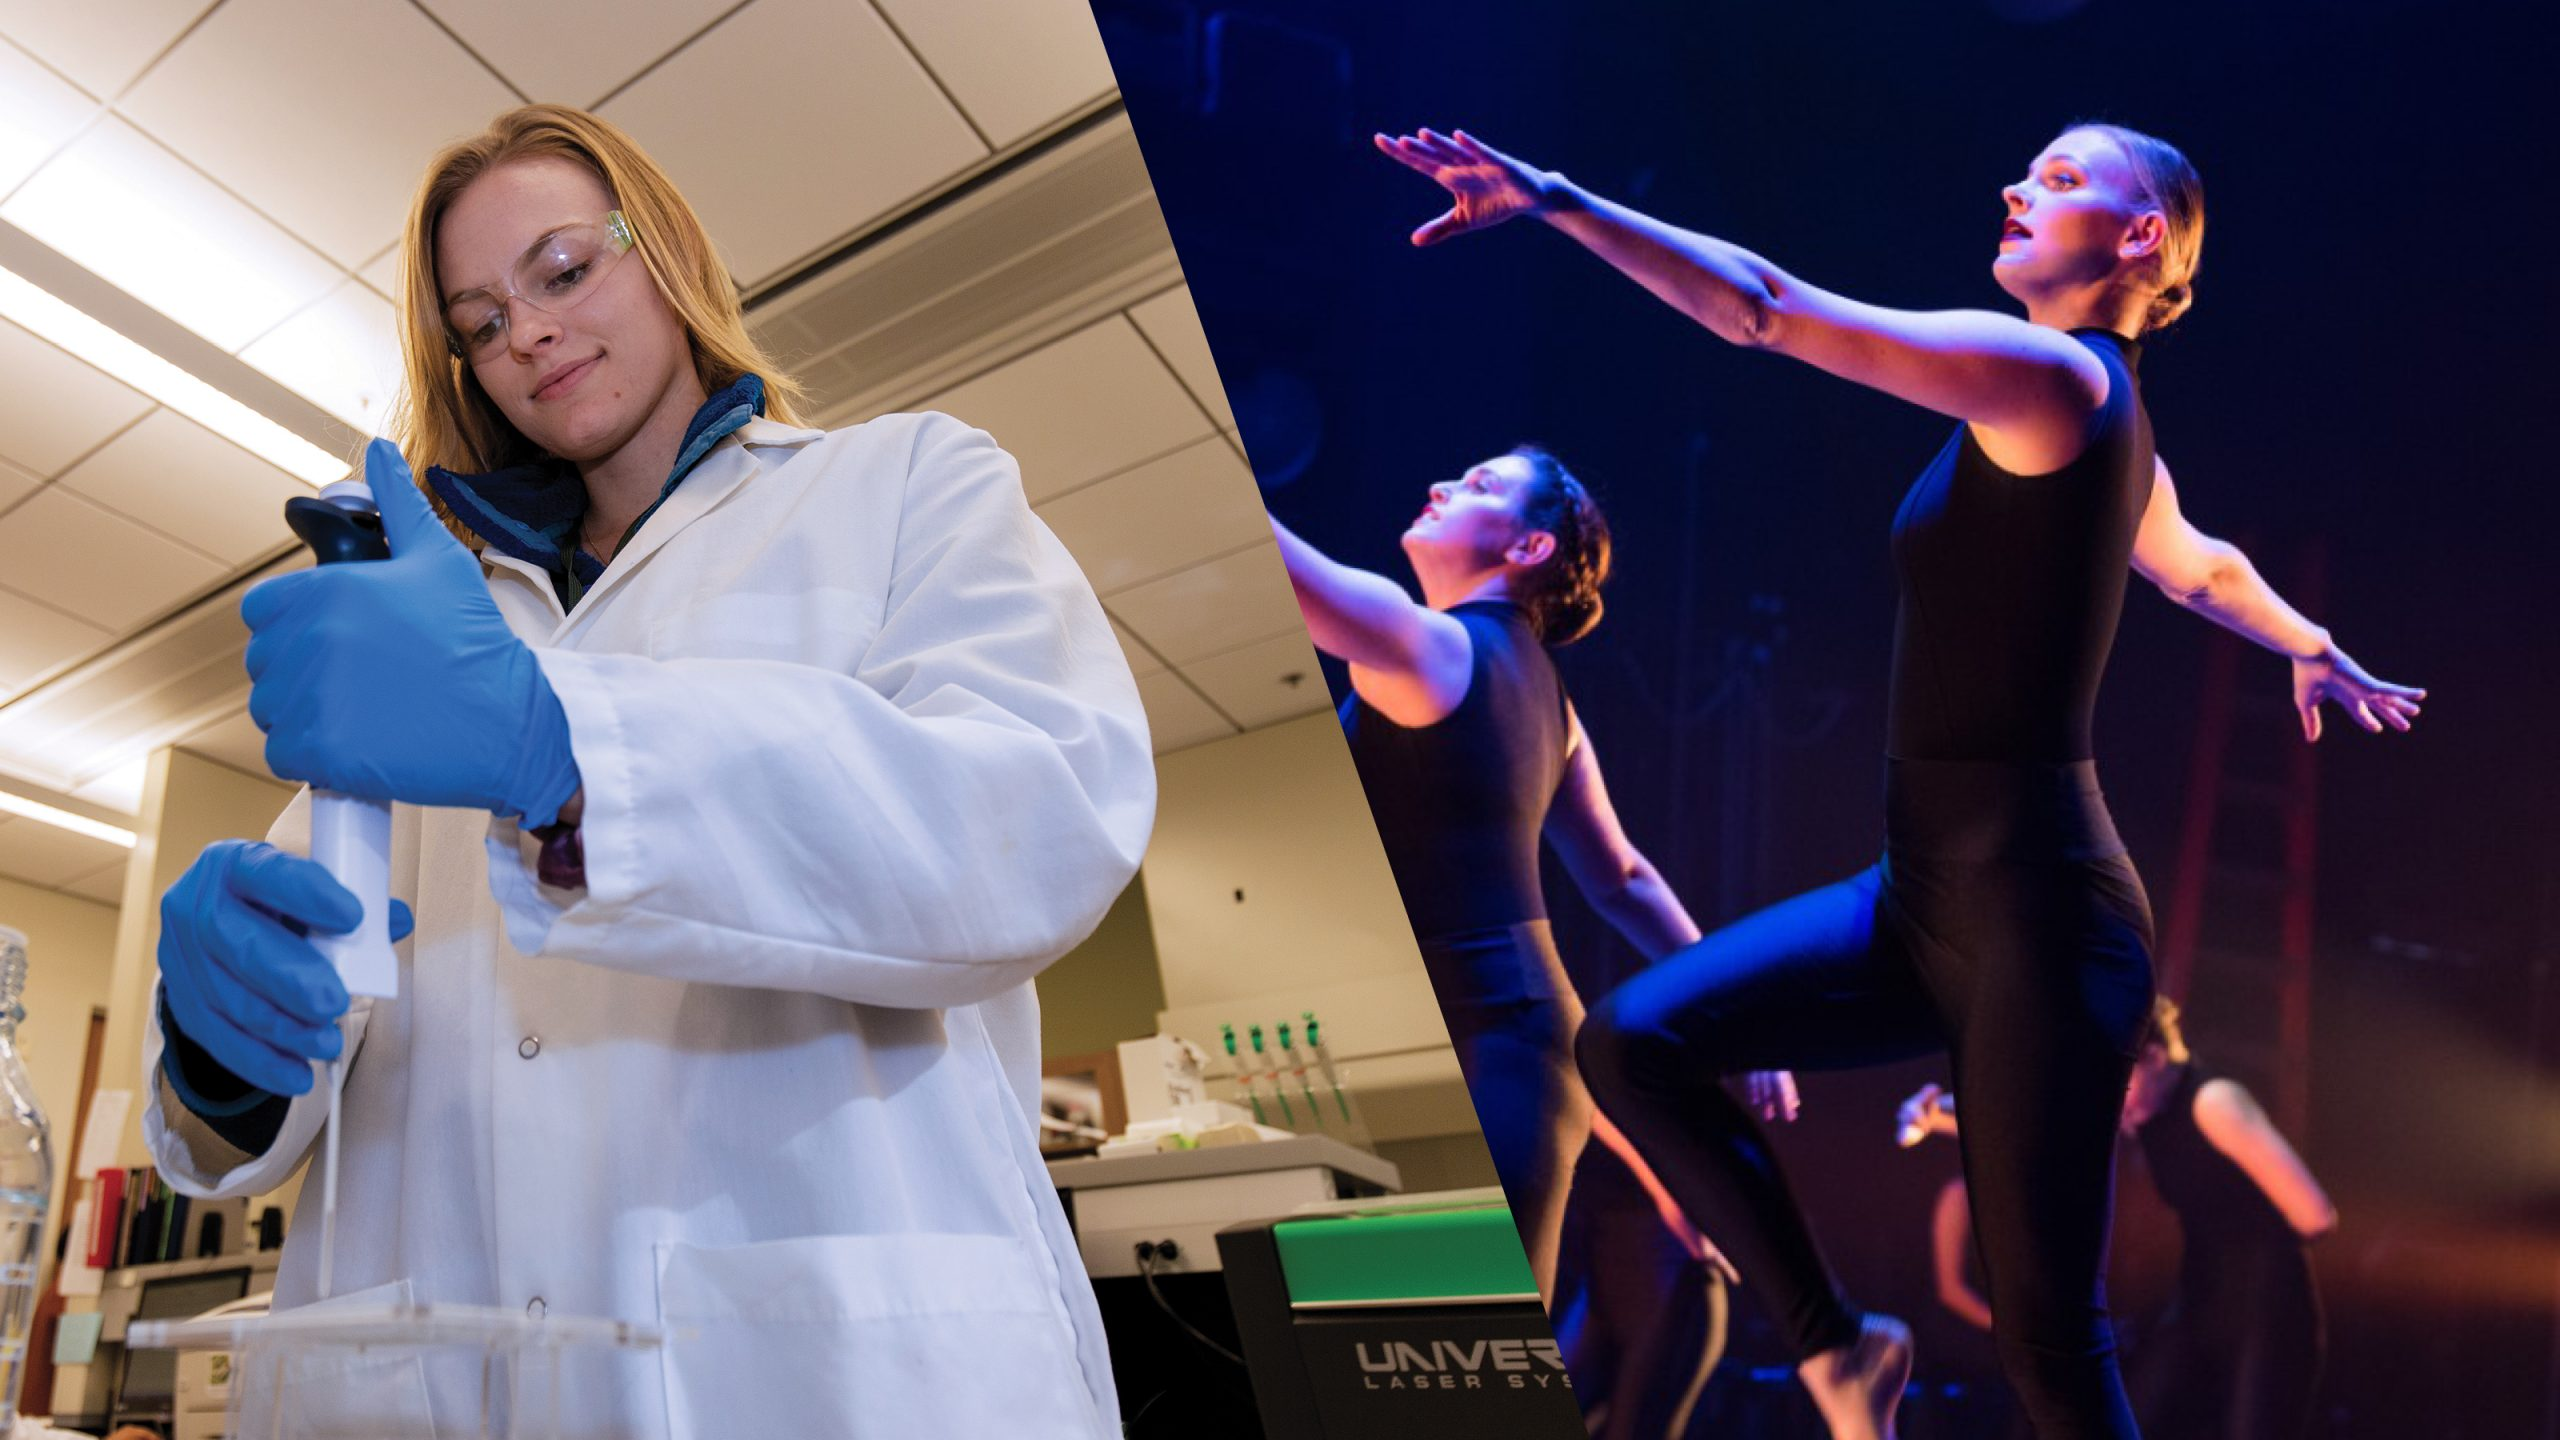 Two photos of Kendall Norberg performing an experiment in a biology lab and dancing on stage